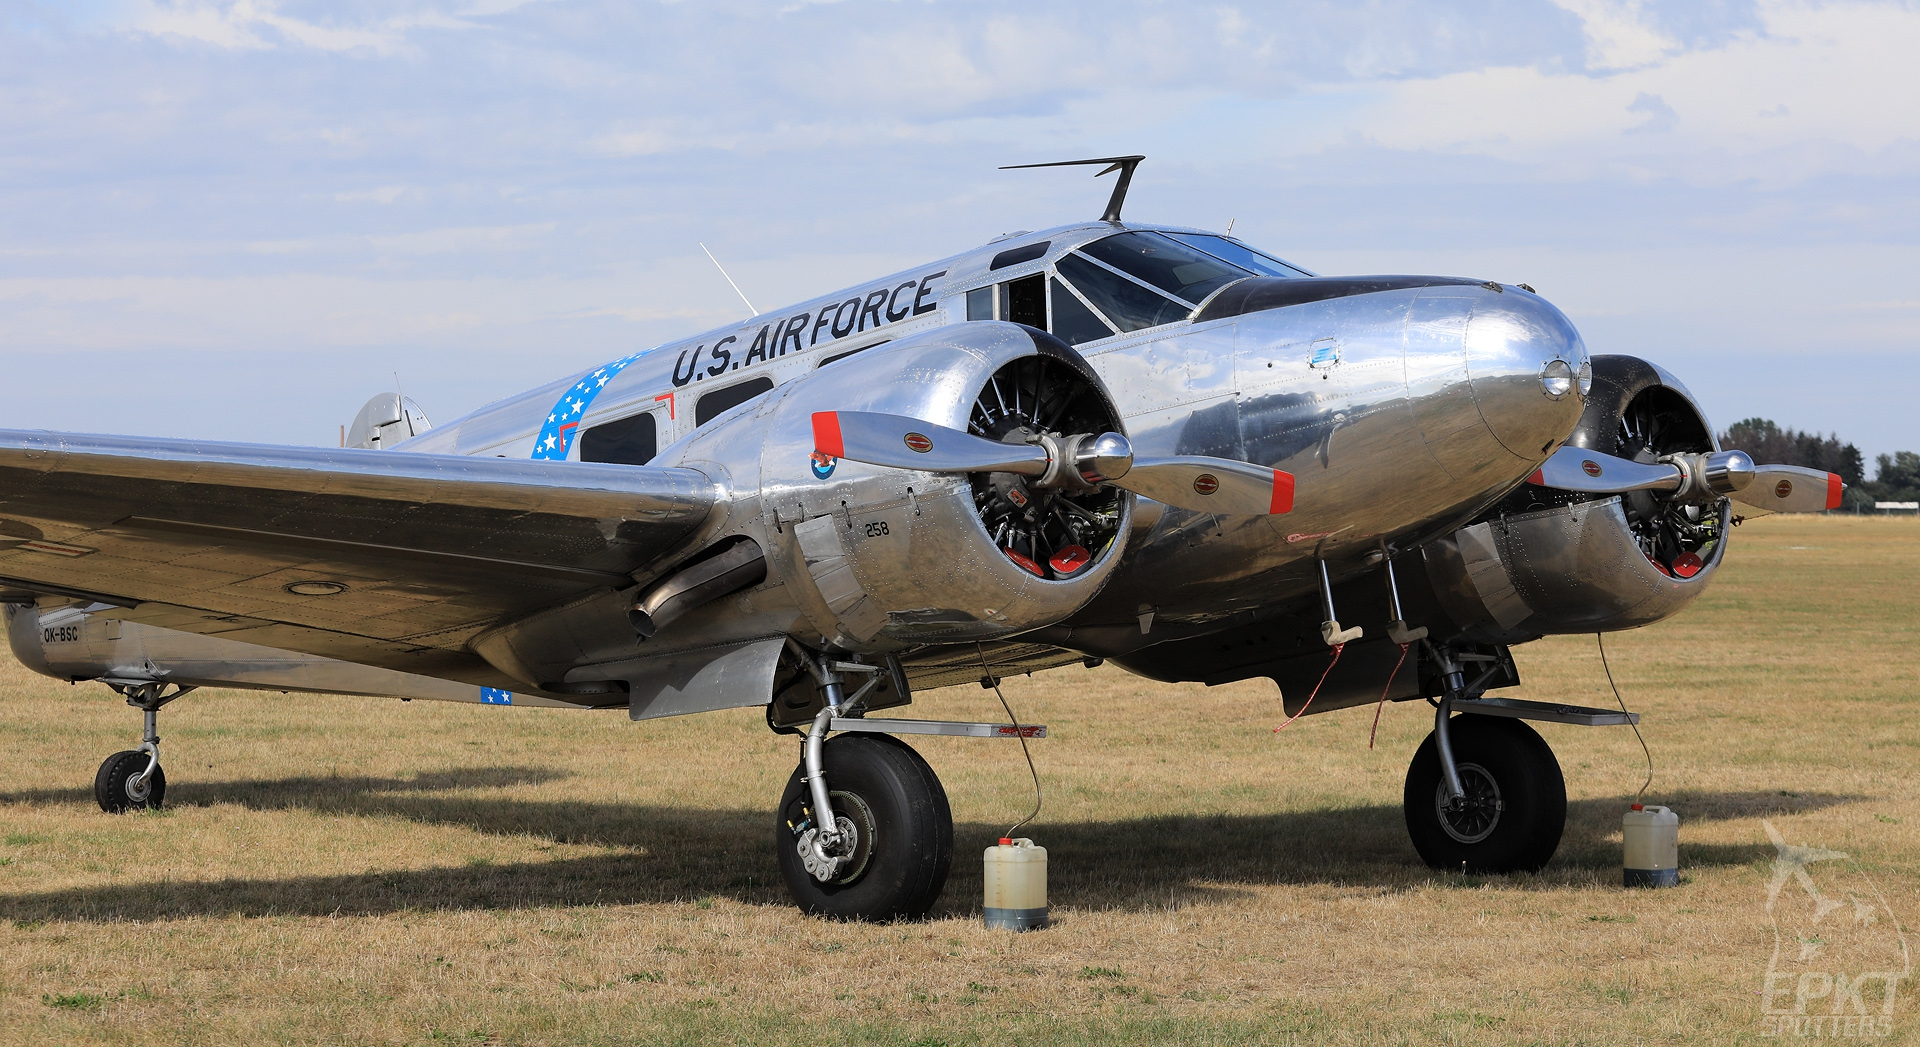 OK-BSC - Beechcraft C-45 H Expeditor (Private) / Leszno - Leszno Poland [EPLS/]